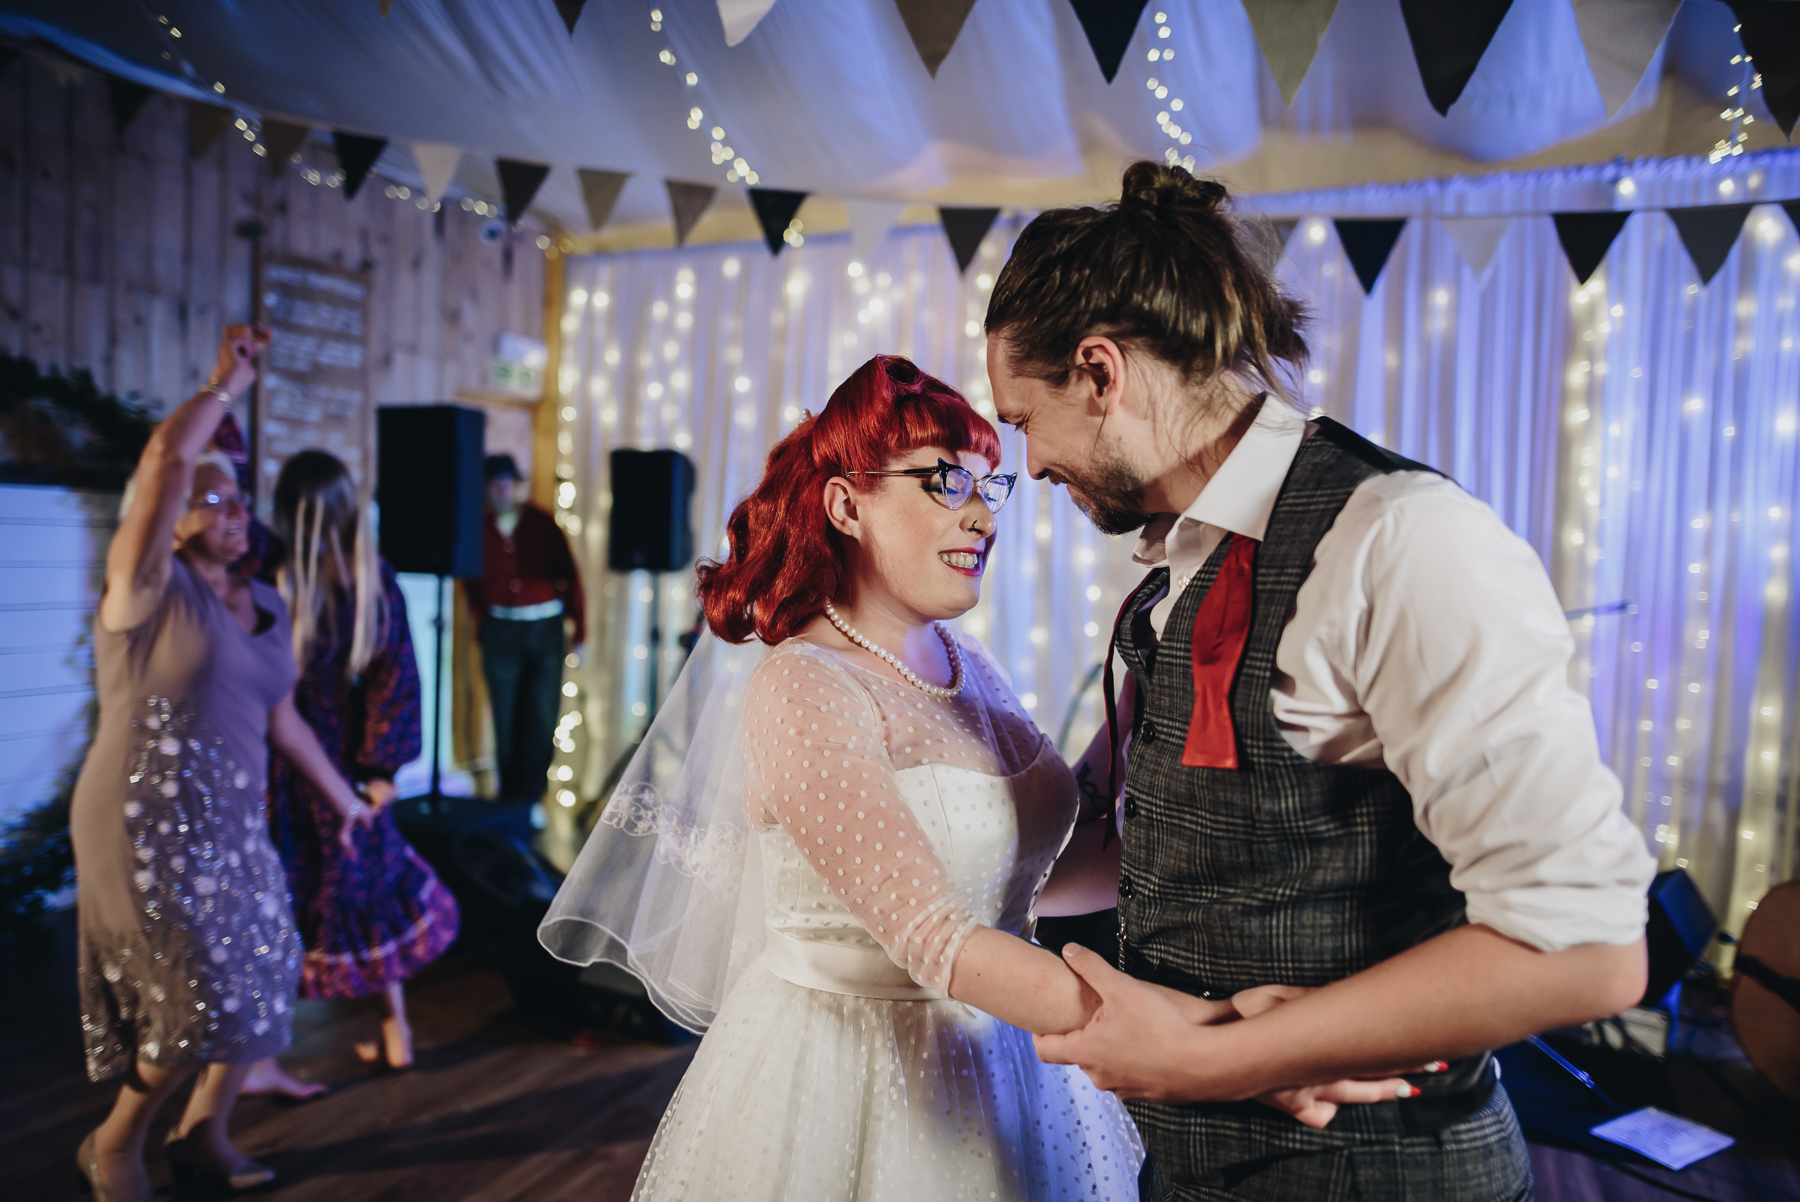 Alternative_Manchester_Wedding_Photography_The_Pin-Up_Bride_Photography-23.jpg